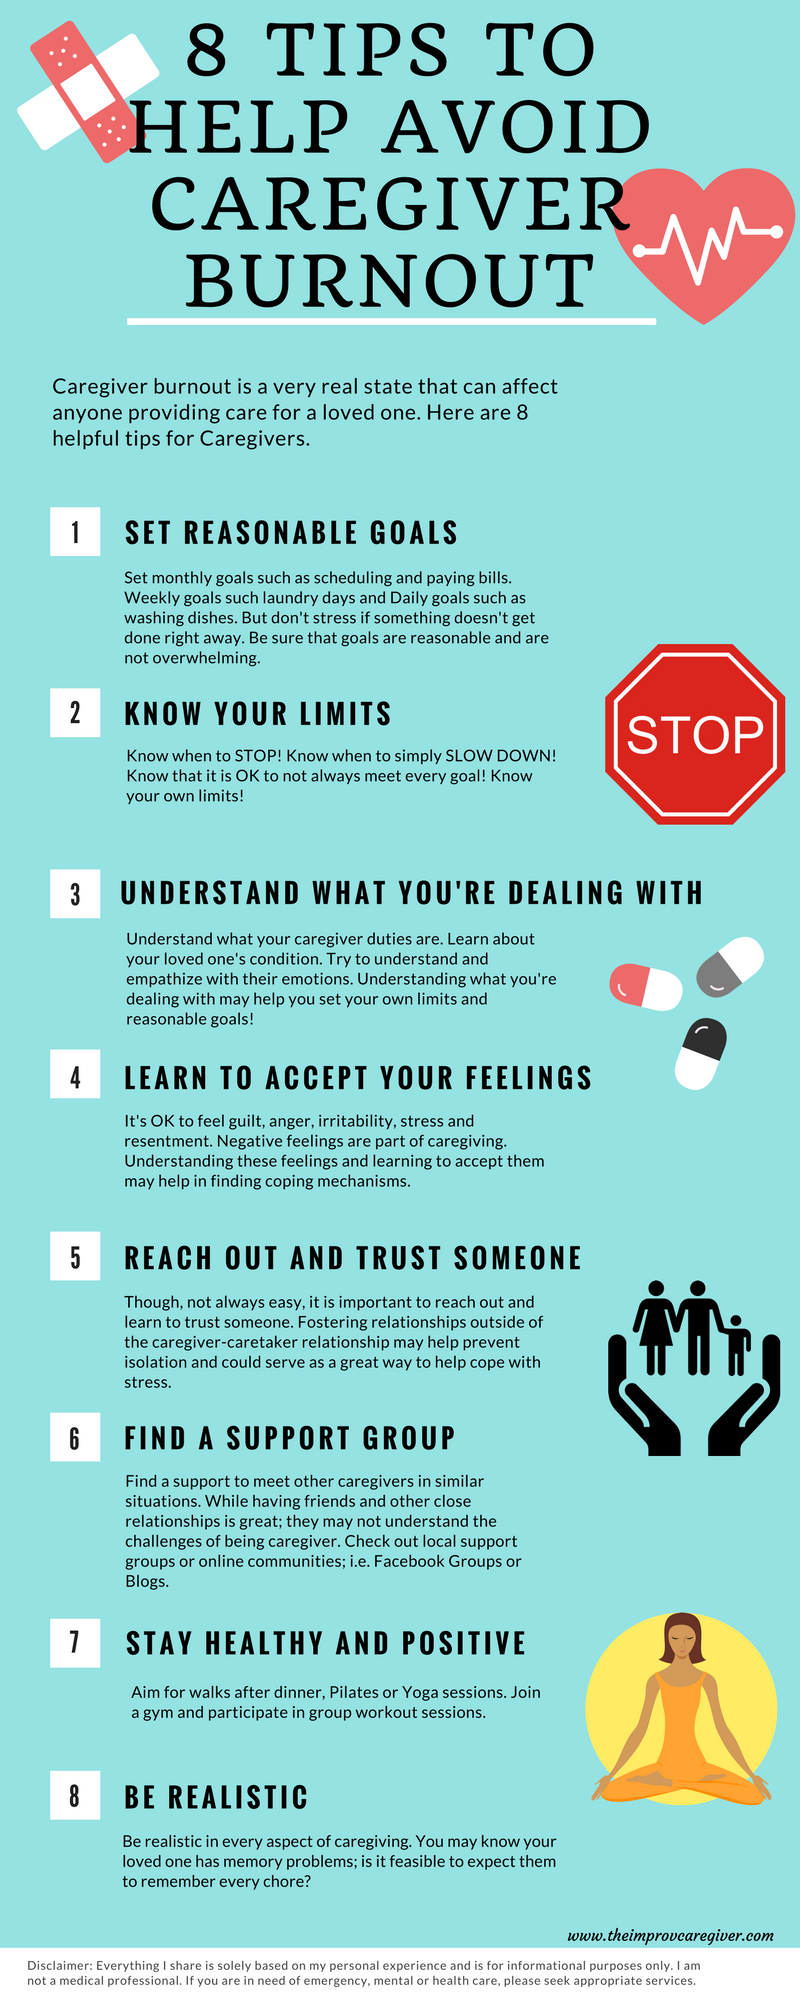 8 tips to avoid caregiver burnout alzheimers caregiver and hospice avoid caregiver burnout these tips